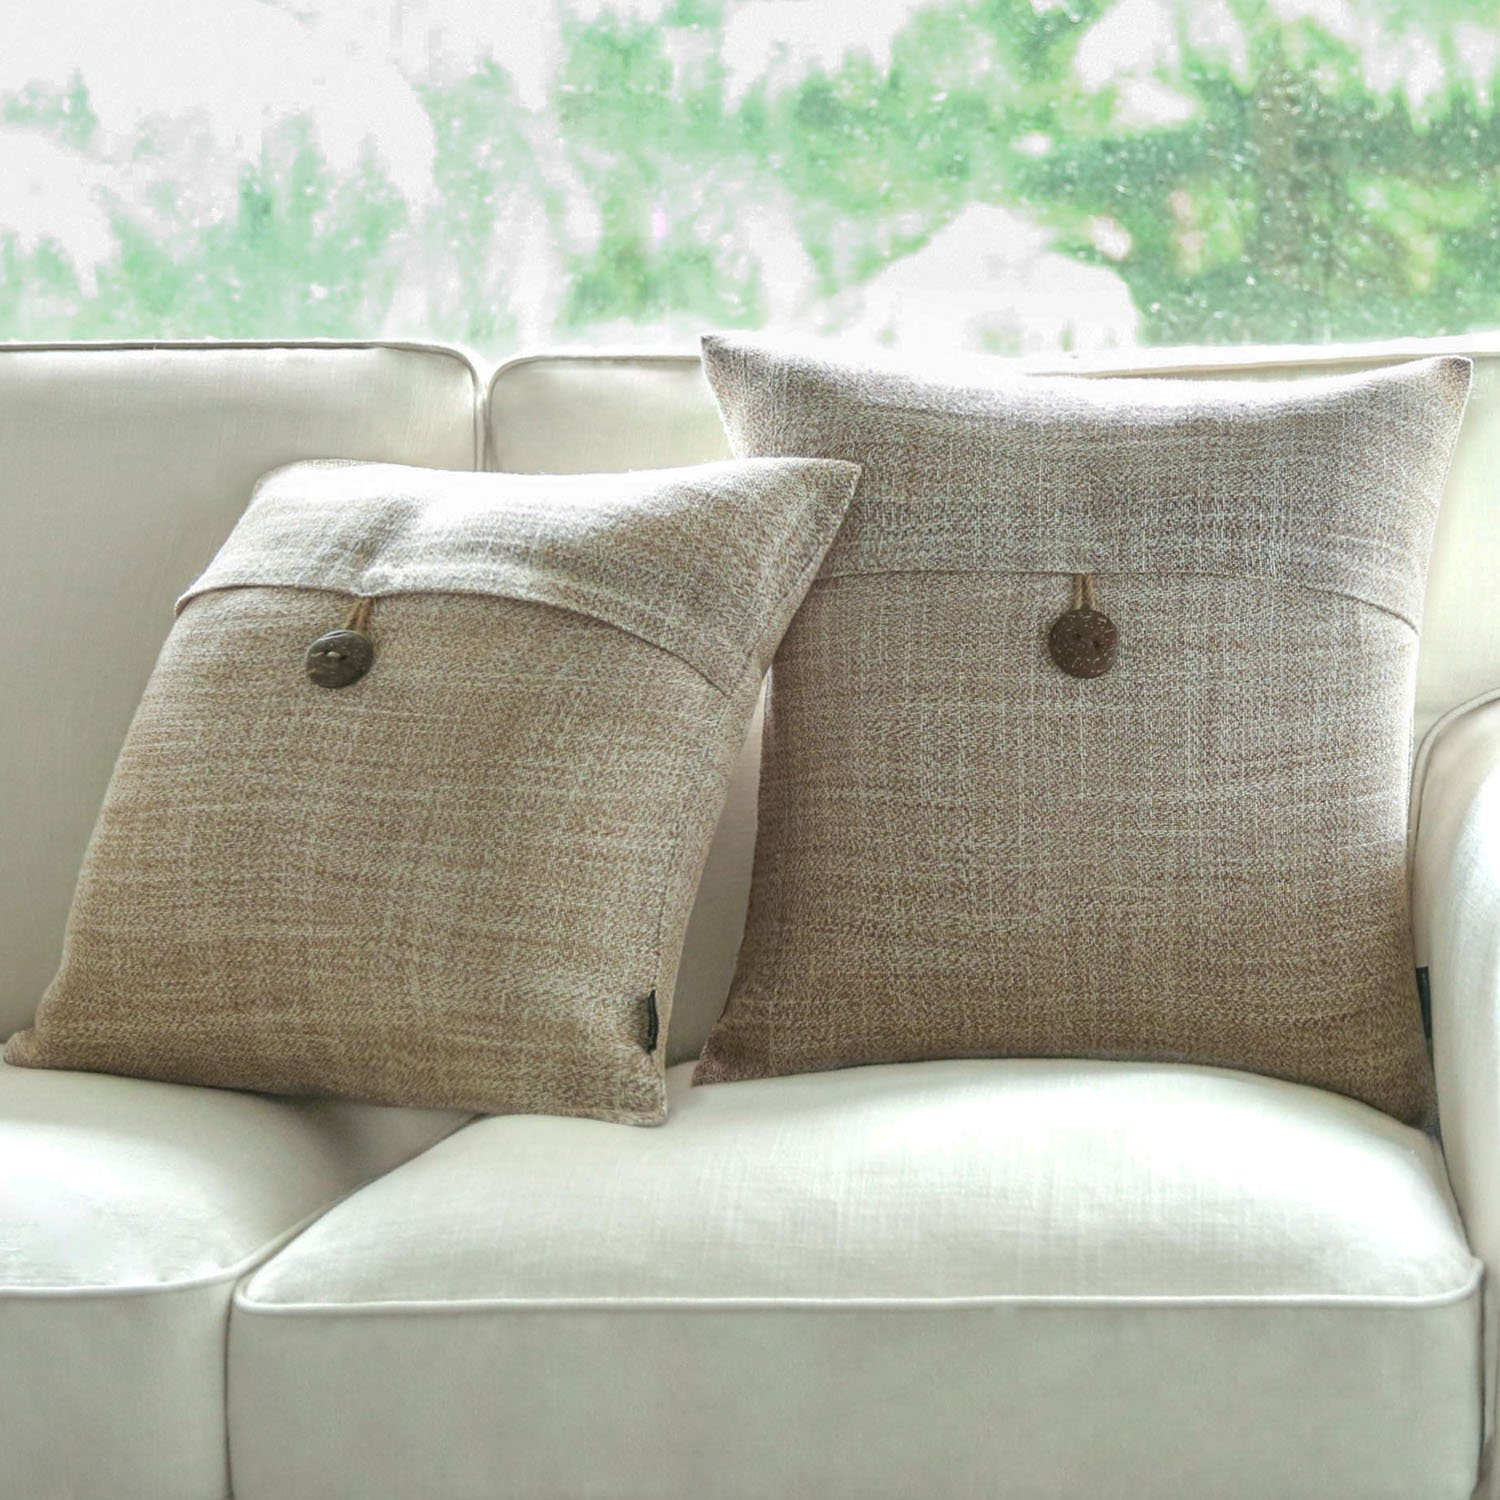 PHANTOSCOPE Set of 2 Button Beige Linen Decorative Throw Pillow Case Cushion Cover 18''X18'' -New!!